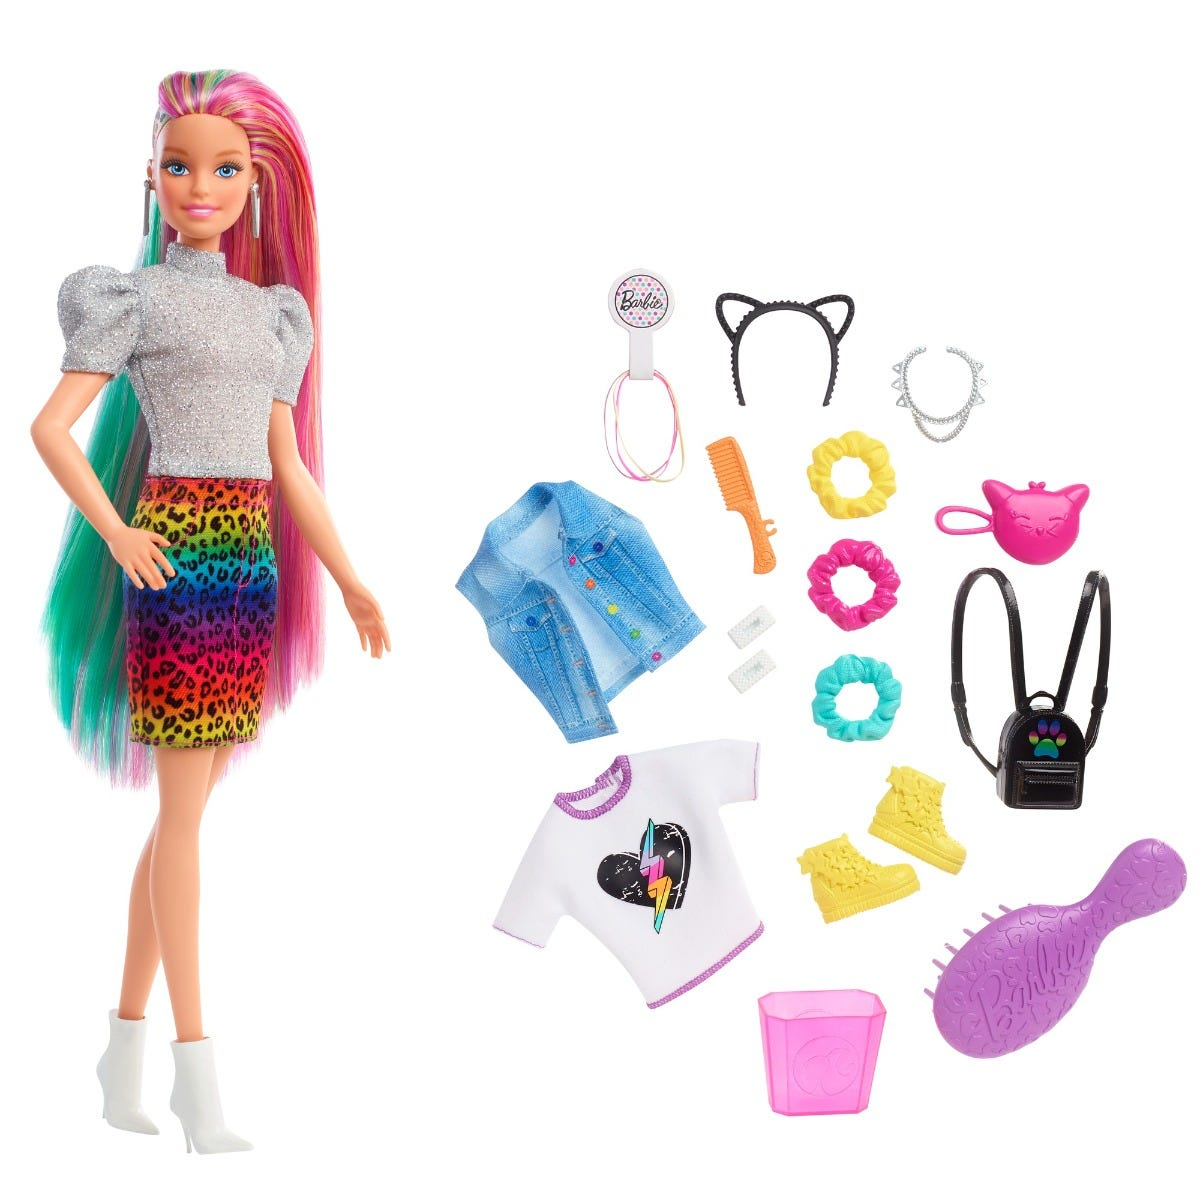 Barbie Leopard Rainbow Hair Doll (Blonde) With Color Change Hair Feature, 16 Accessories, Ages 3 To